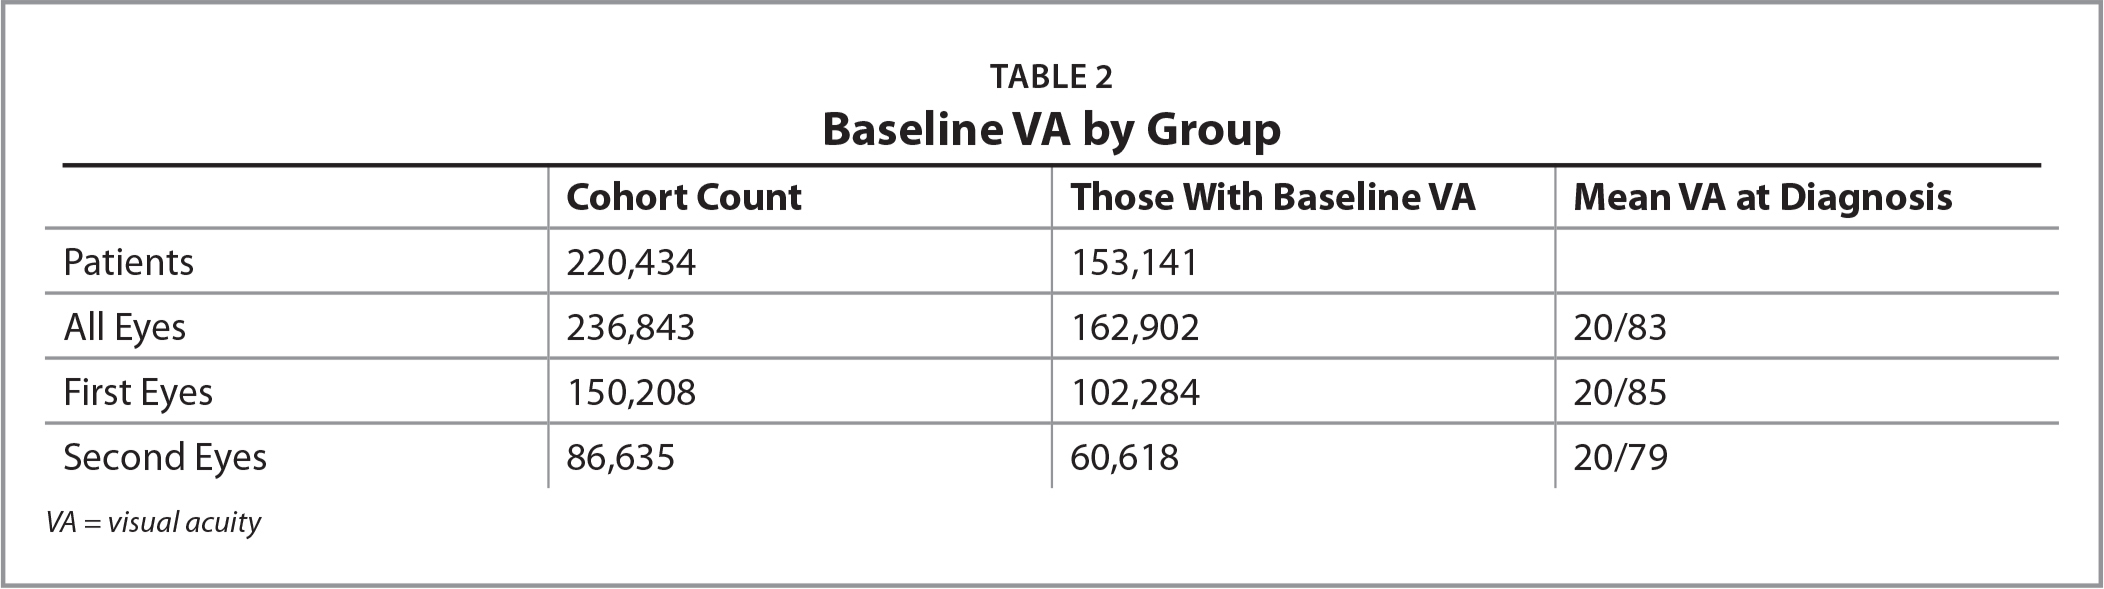 Baseline VA by Group